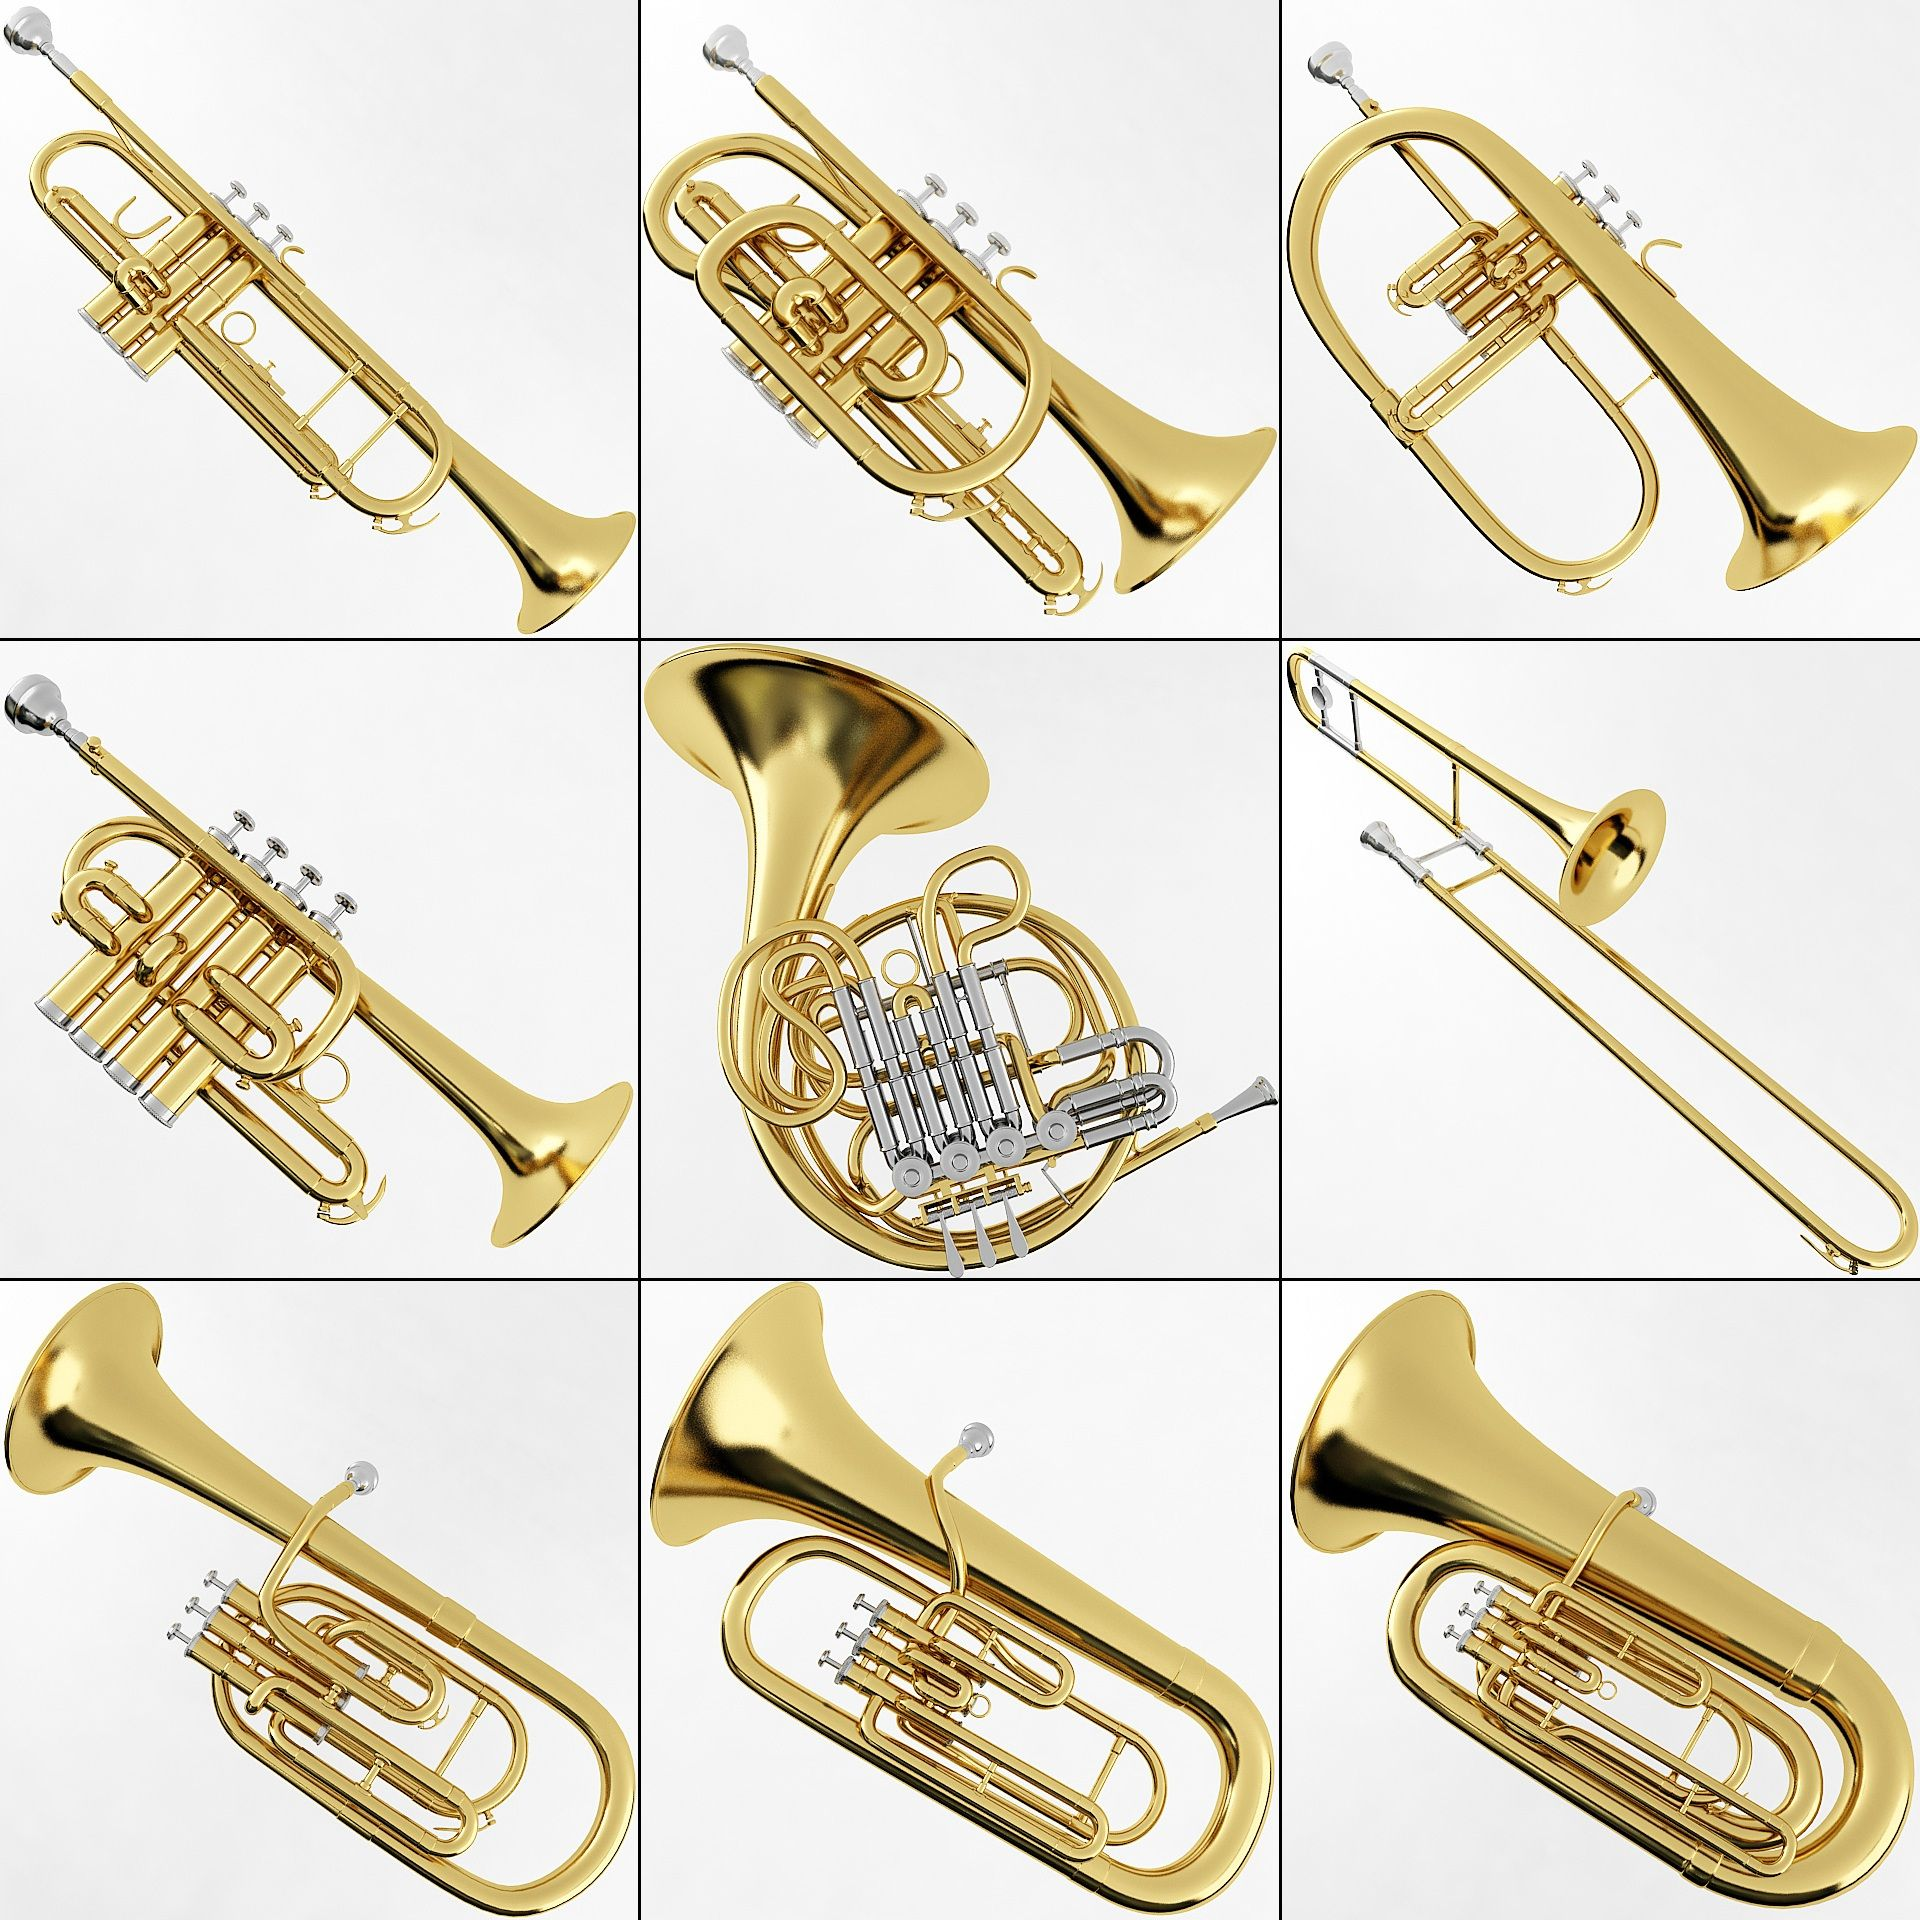 All the brass instruments revolve around the French Horn